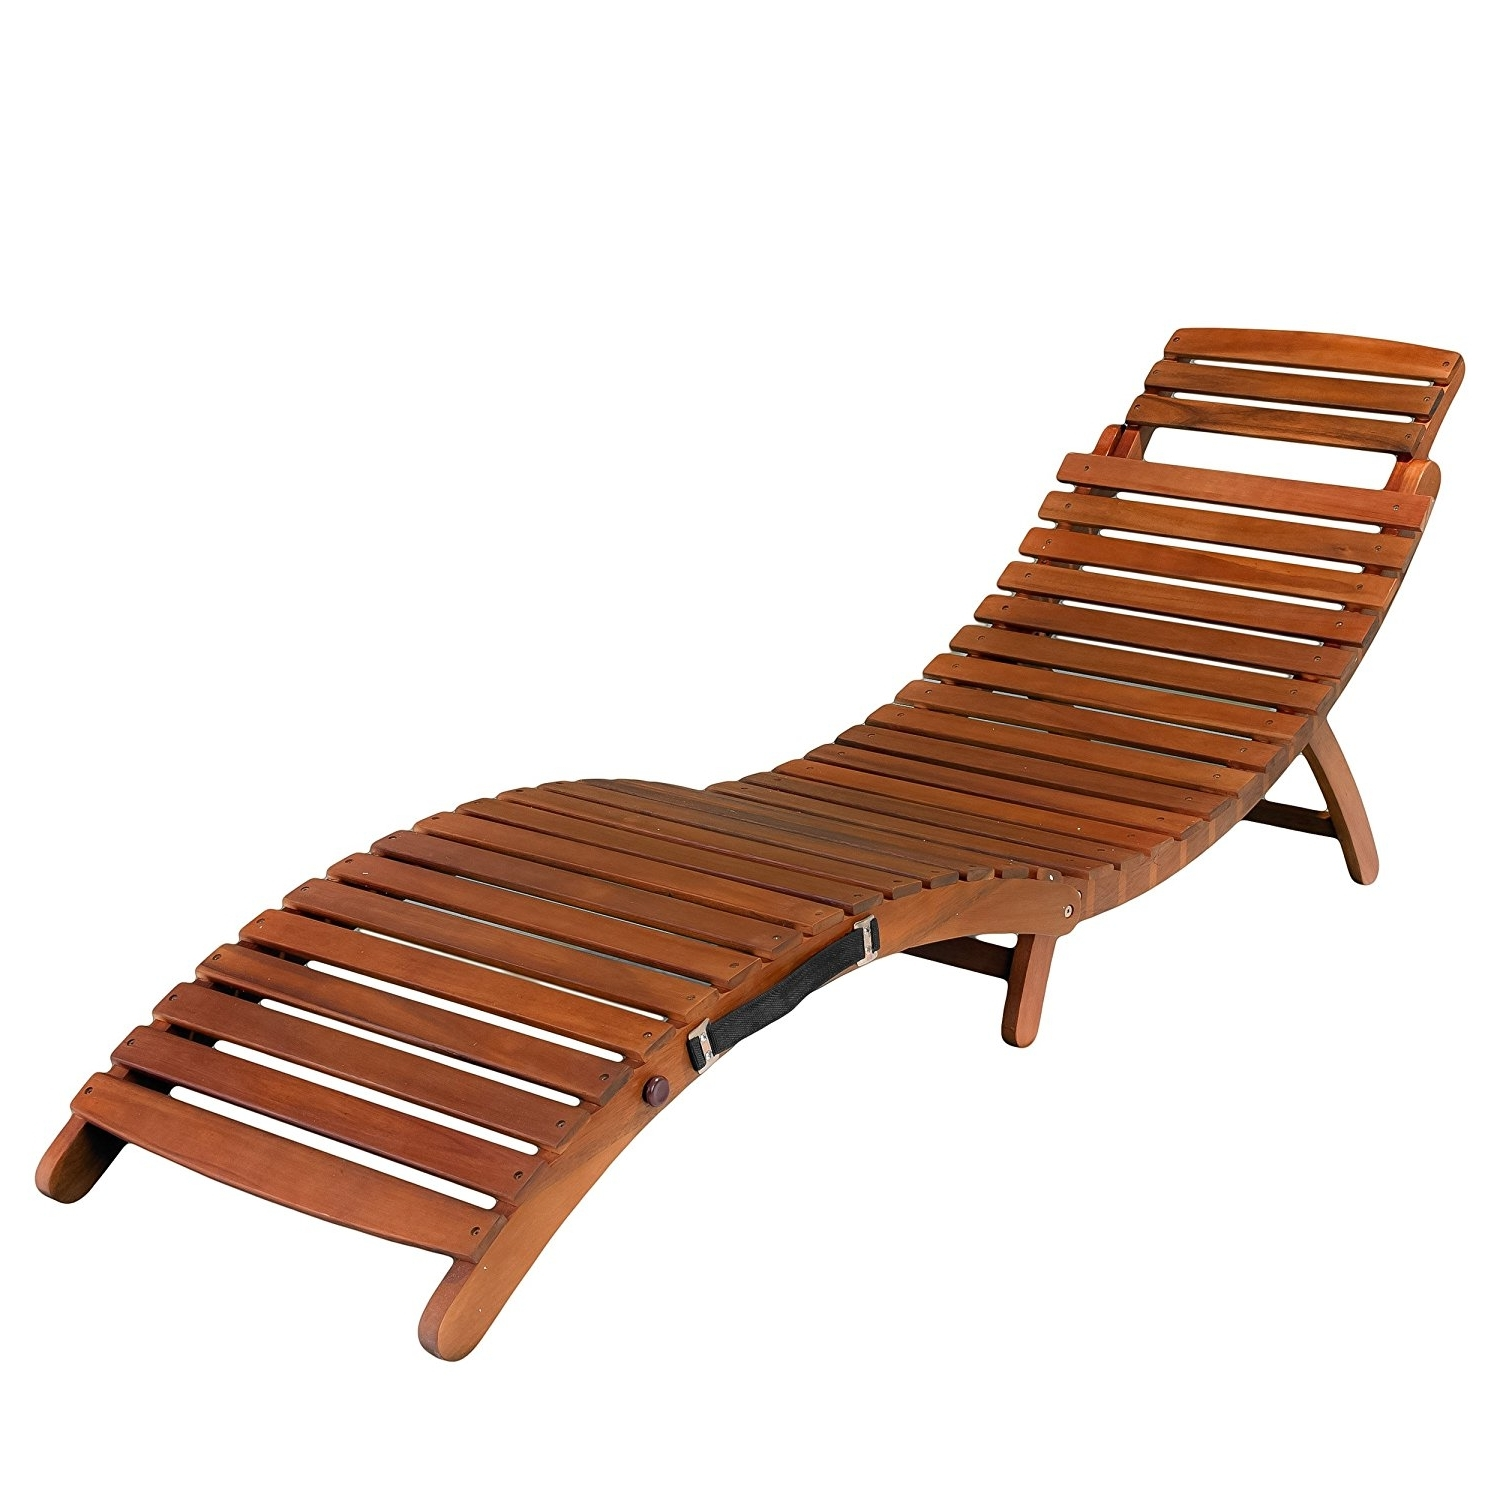 Cheap Folding Chaise Lounge Chairs For Outdoor Inside Popular Amazon: Best Selling Del Rio Wood Outdoor Chaise Lounge (View 2 of 15)